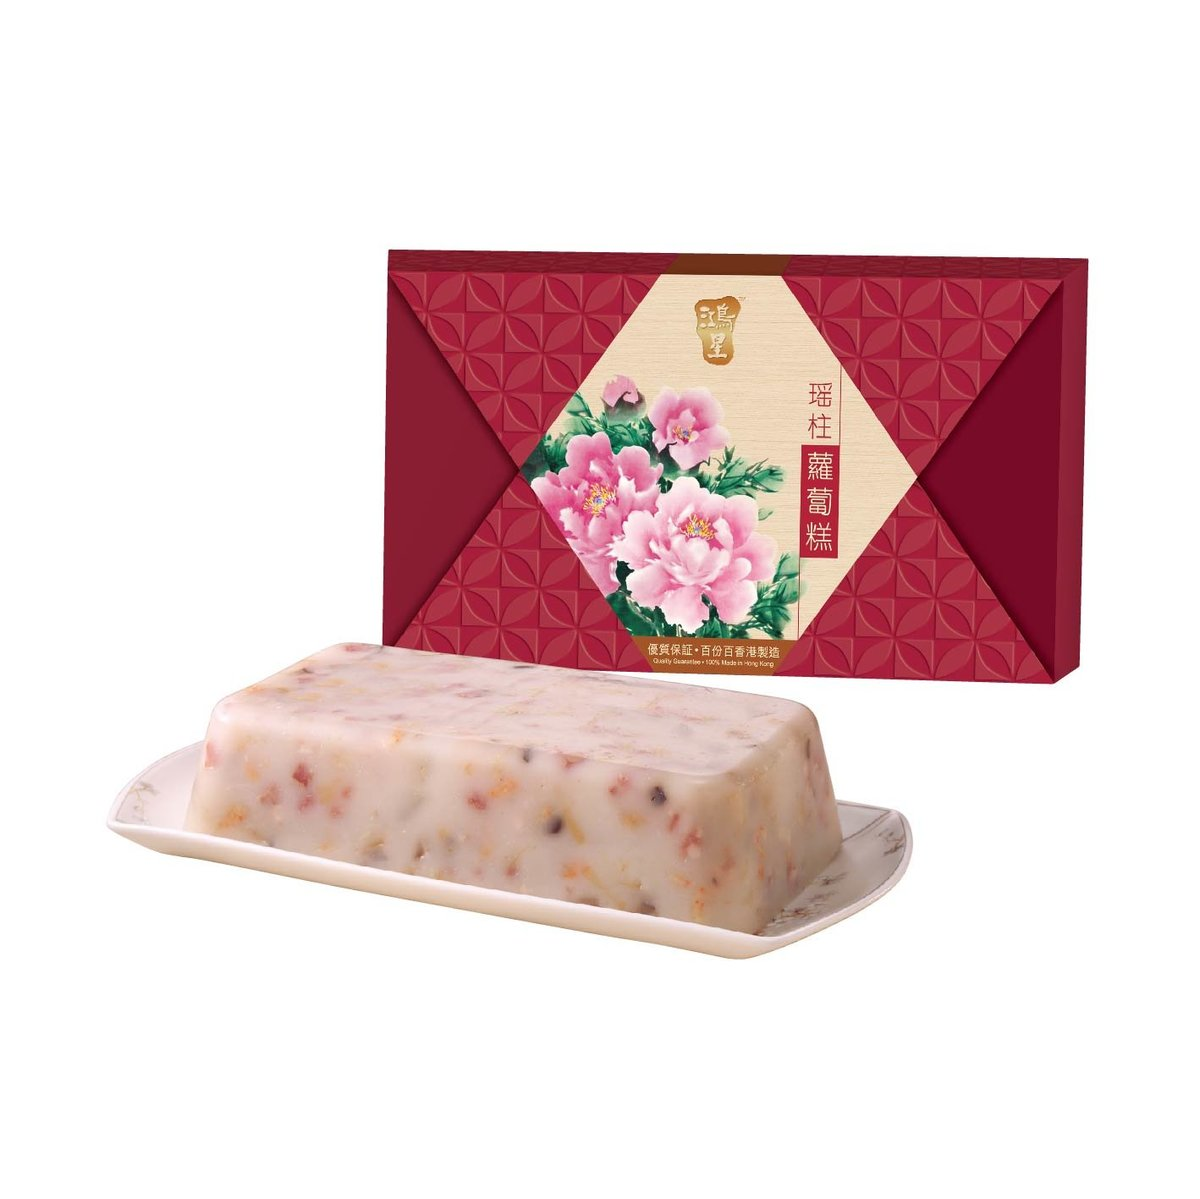 Turnip Cake with Chinese Conpoy(850g) (Voucher)(Redemption Period now to Jan 21)